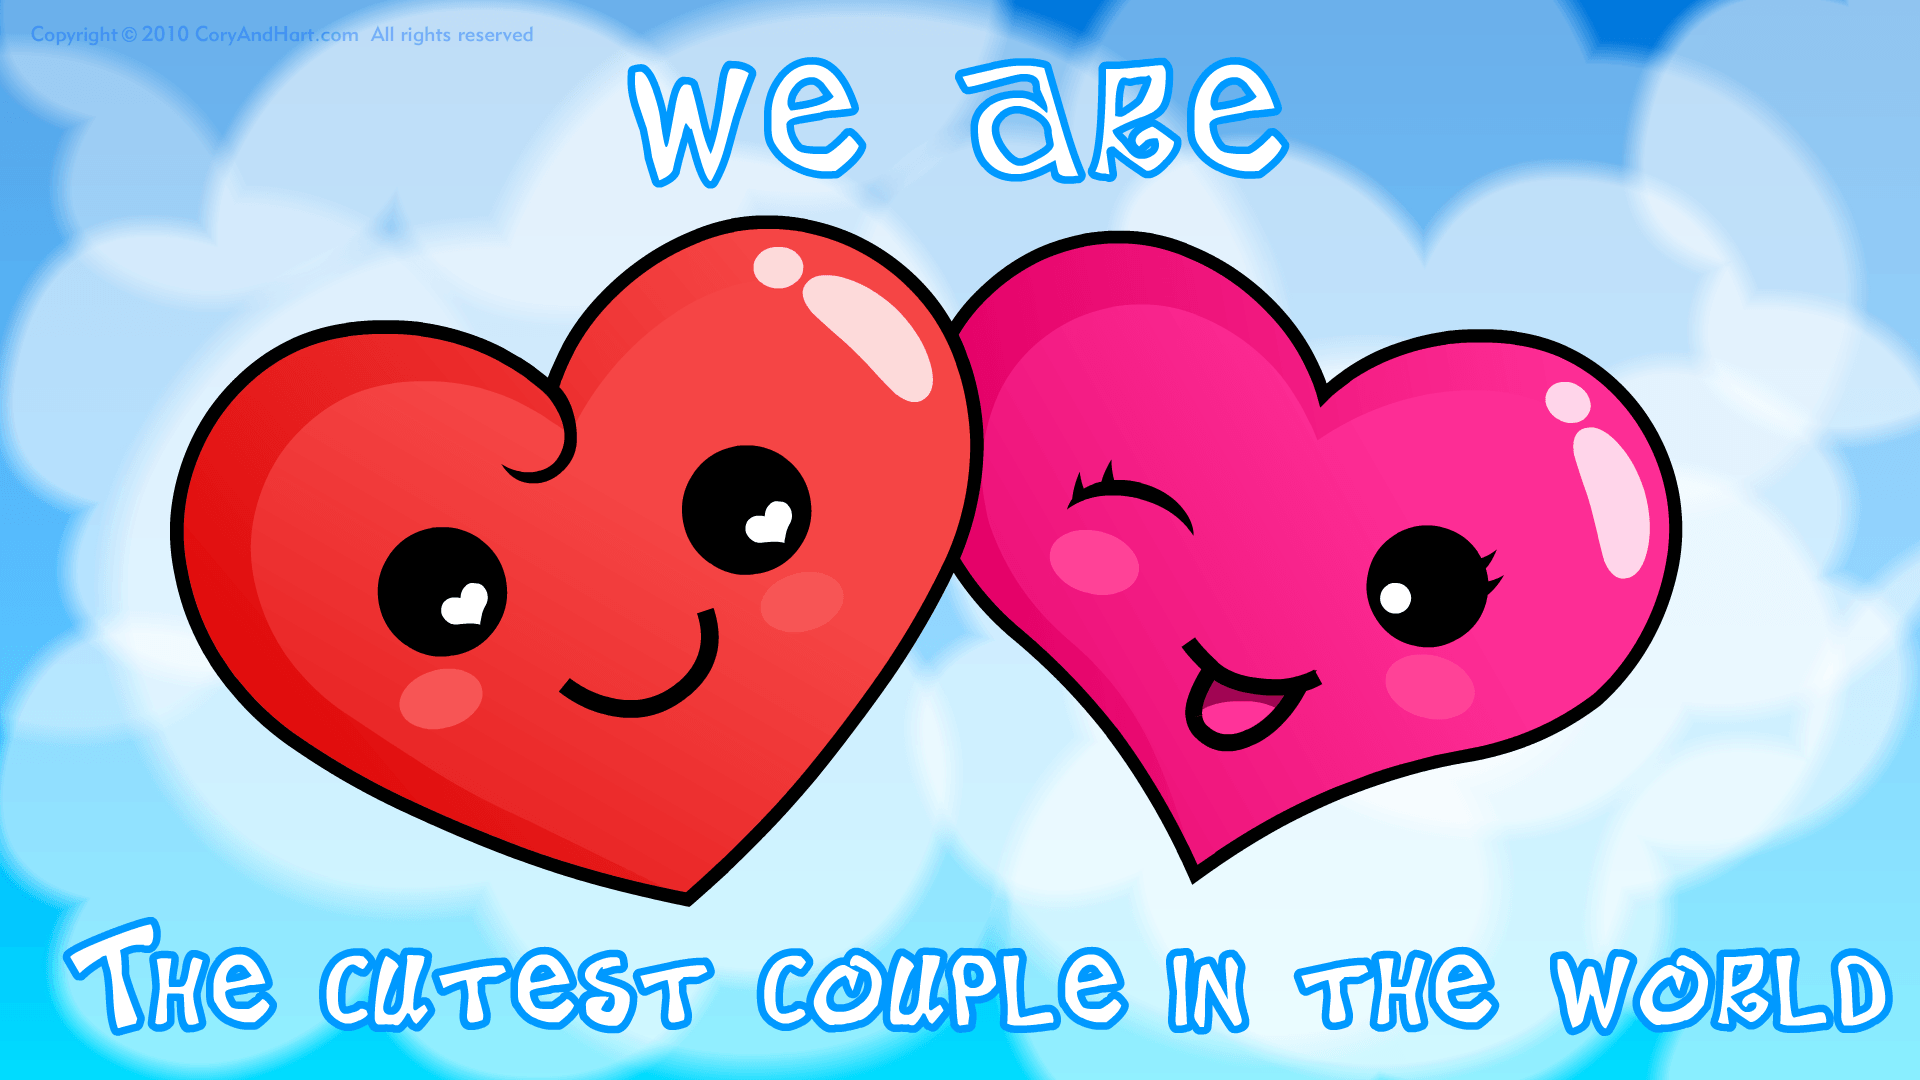 Love couple Wallpaper Animated : Free Love Wallpapers Gallery - Wallpaper cave